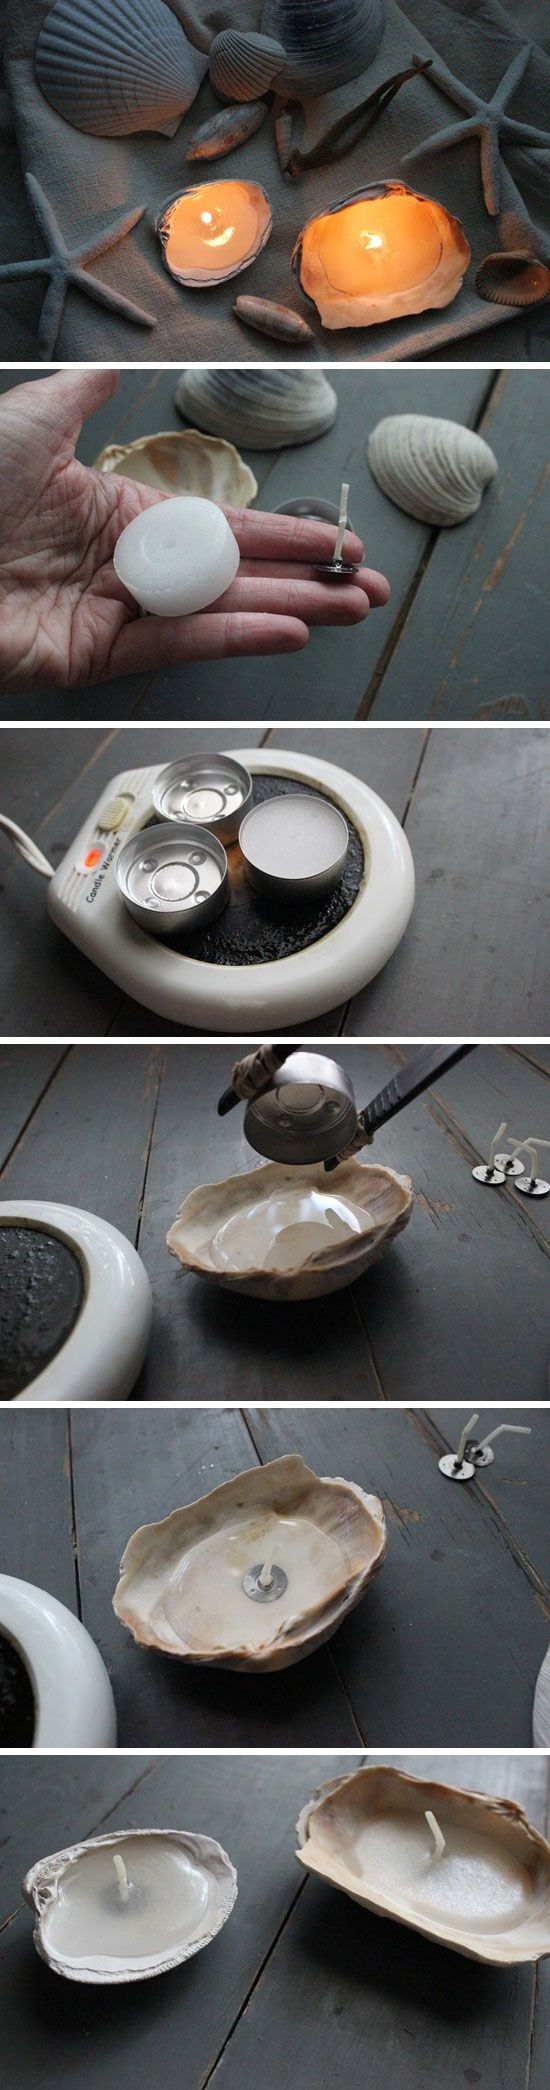 Recycle Old Items Into DIY Budget Lighting Projects That Will Make Your Home Shine homesthetics  (17)